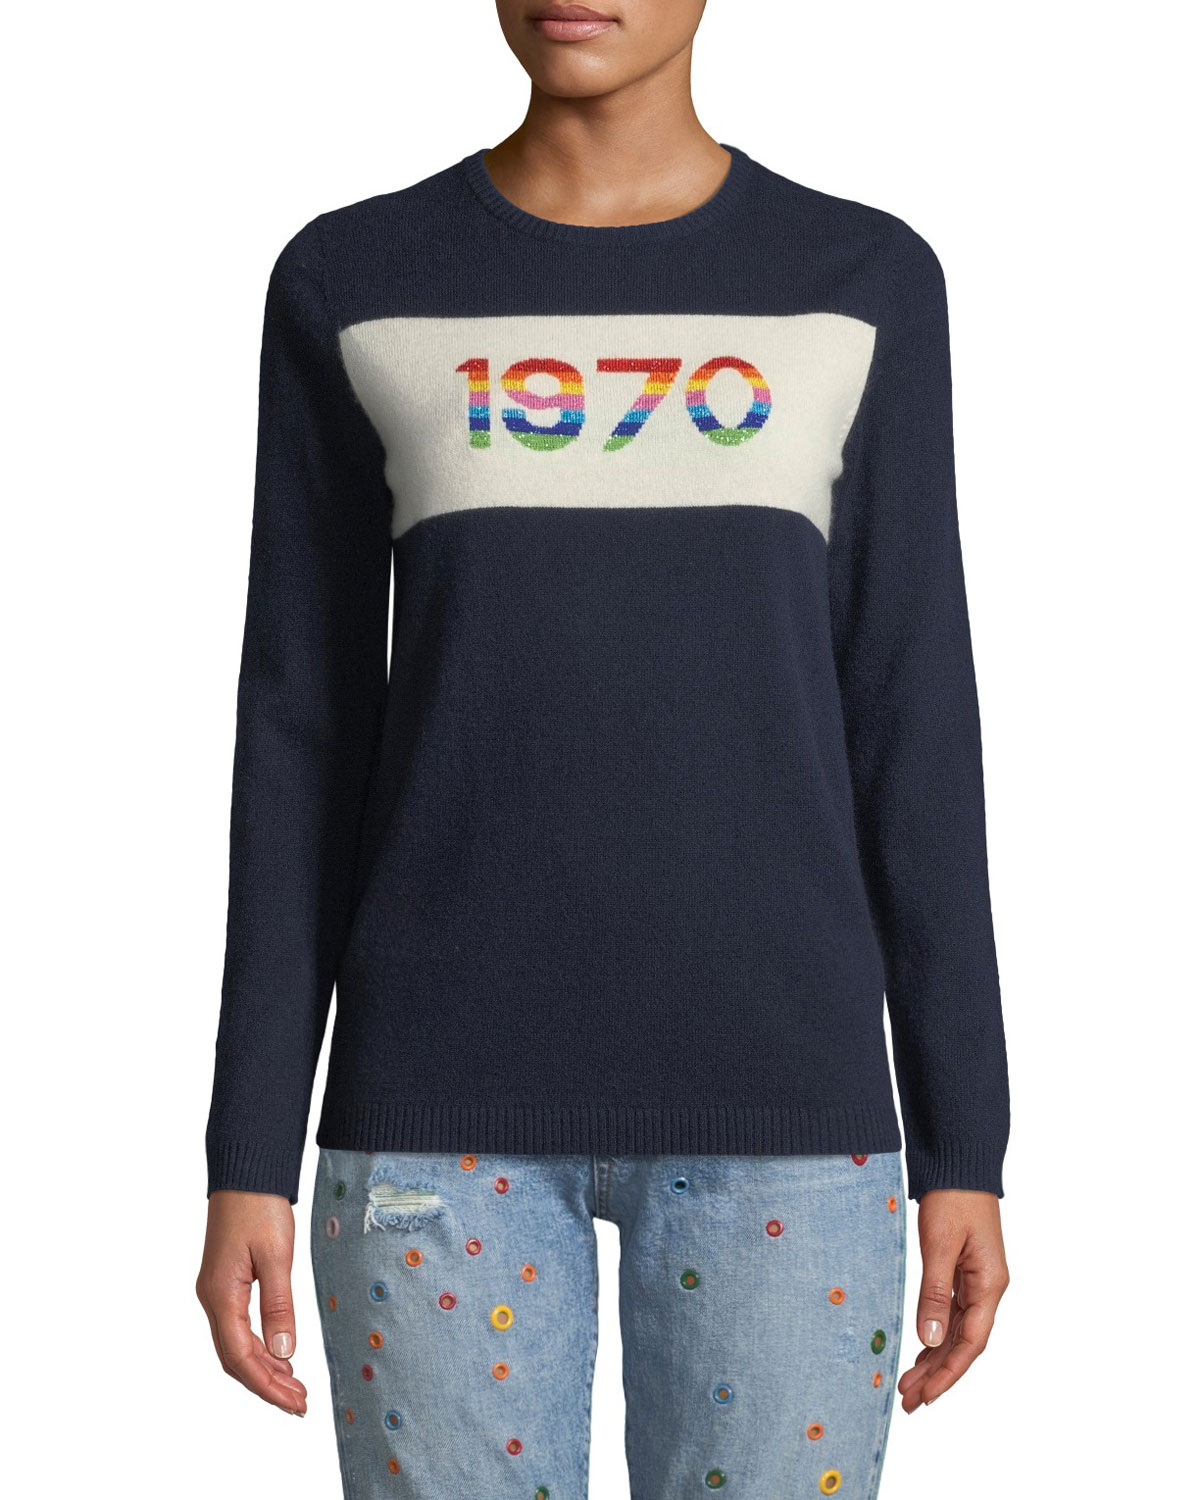 1970 Rainbow Graphic Cashmere Sweater